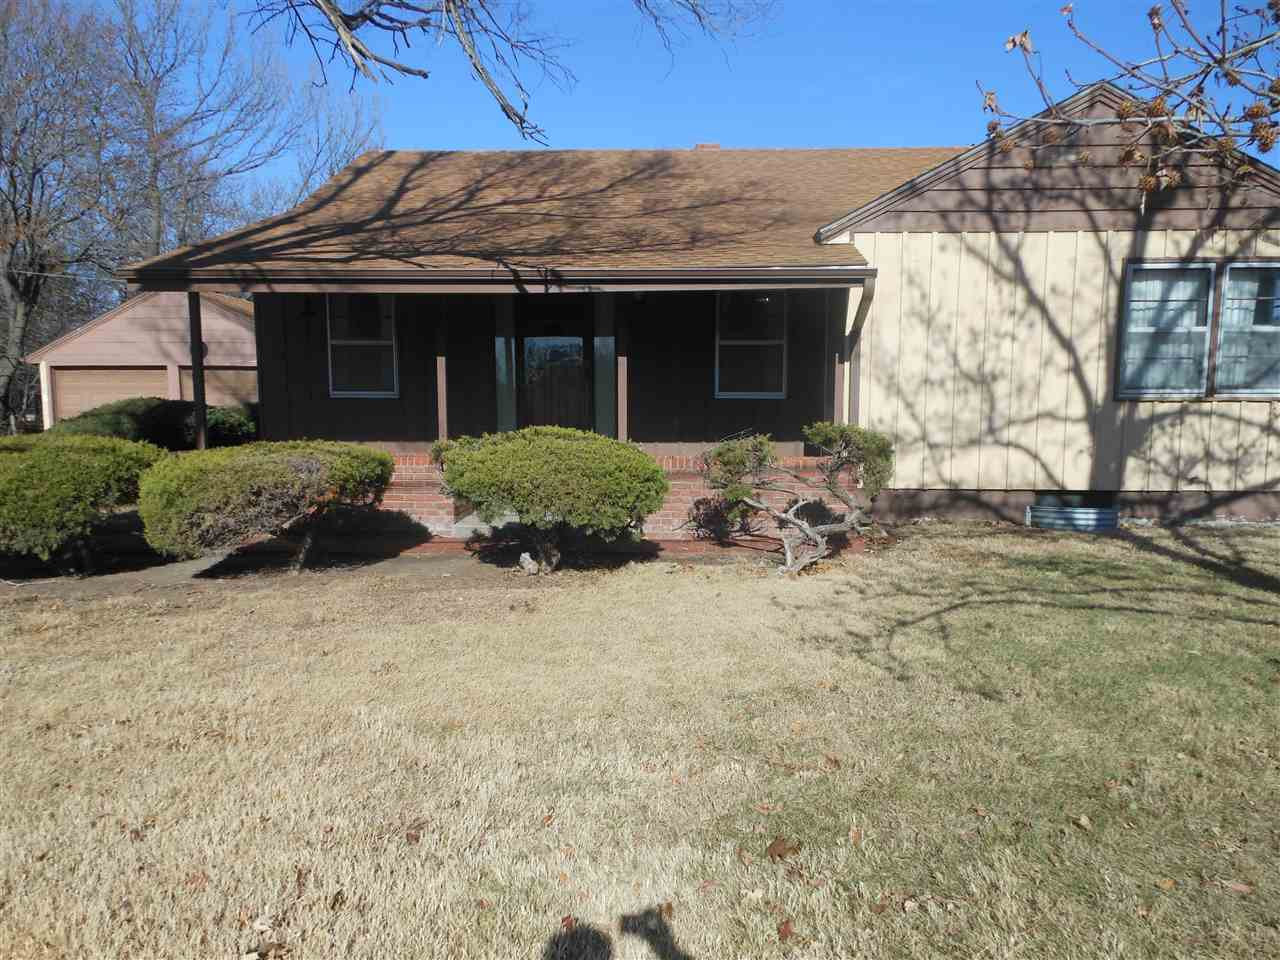 This home was previously used as a single family home with a guest quarters. But is designed and can be locked to allow for two self contained homes. There is a door between the living areas on the main floor that can be locked. Great location, seller thinks that there may be wood floors under some of the main floor carpet, buyer must confirm for sure.  New roof and guttering installed 2018, new refrigerator on west side replaced 2019. Carpet cleaned on west side unit. East side has not been lived in for many years. Electric fireplace in east living room could be moved over to the west unit. Washer dryer in basement stay with home. Two O.H. door remotes stay with the home. Lots of opportunities with this home! Seller has not lived in the home, so we do not have a Seller Property Disclosure. Partial wood fence in back yard. Seller has repaired the basement walls!!